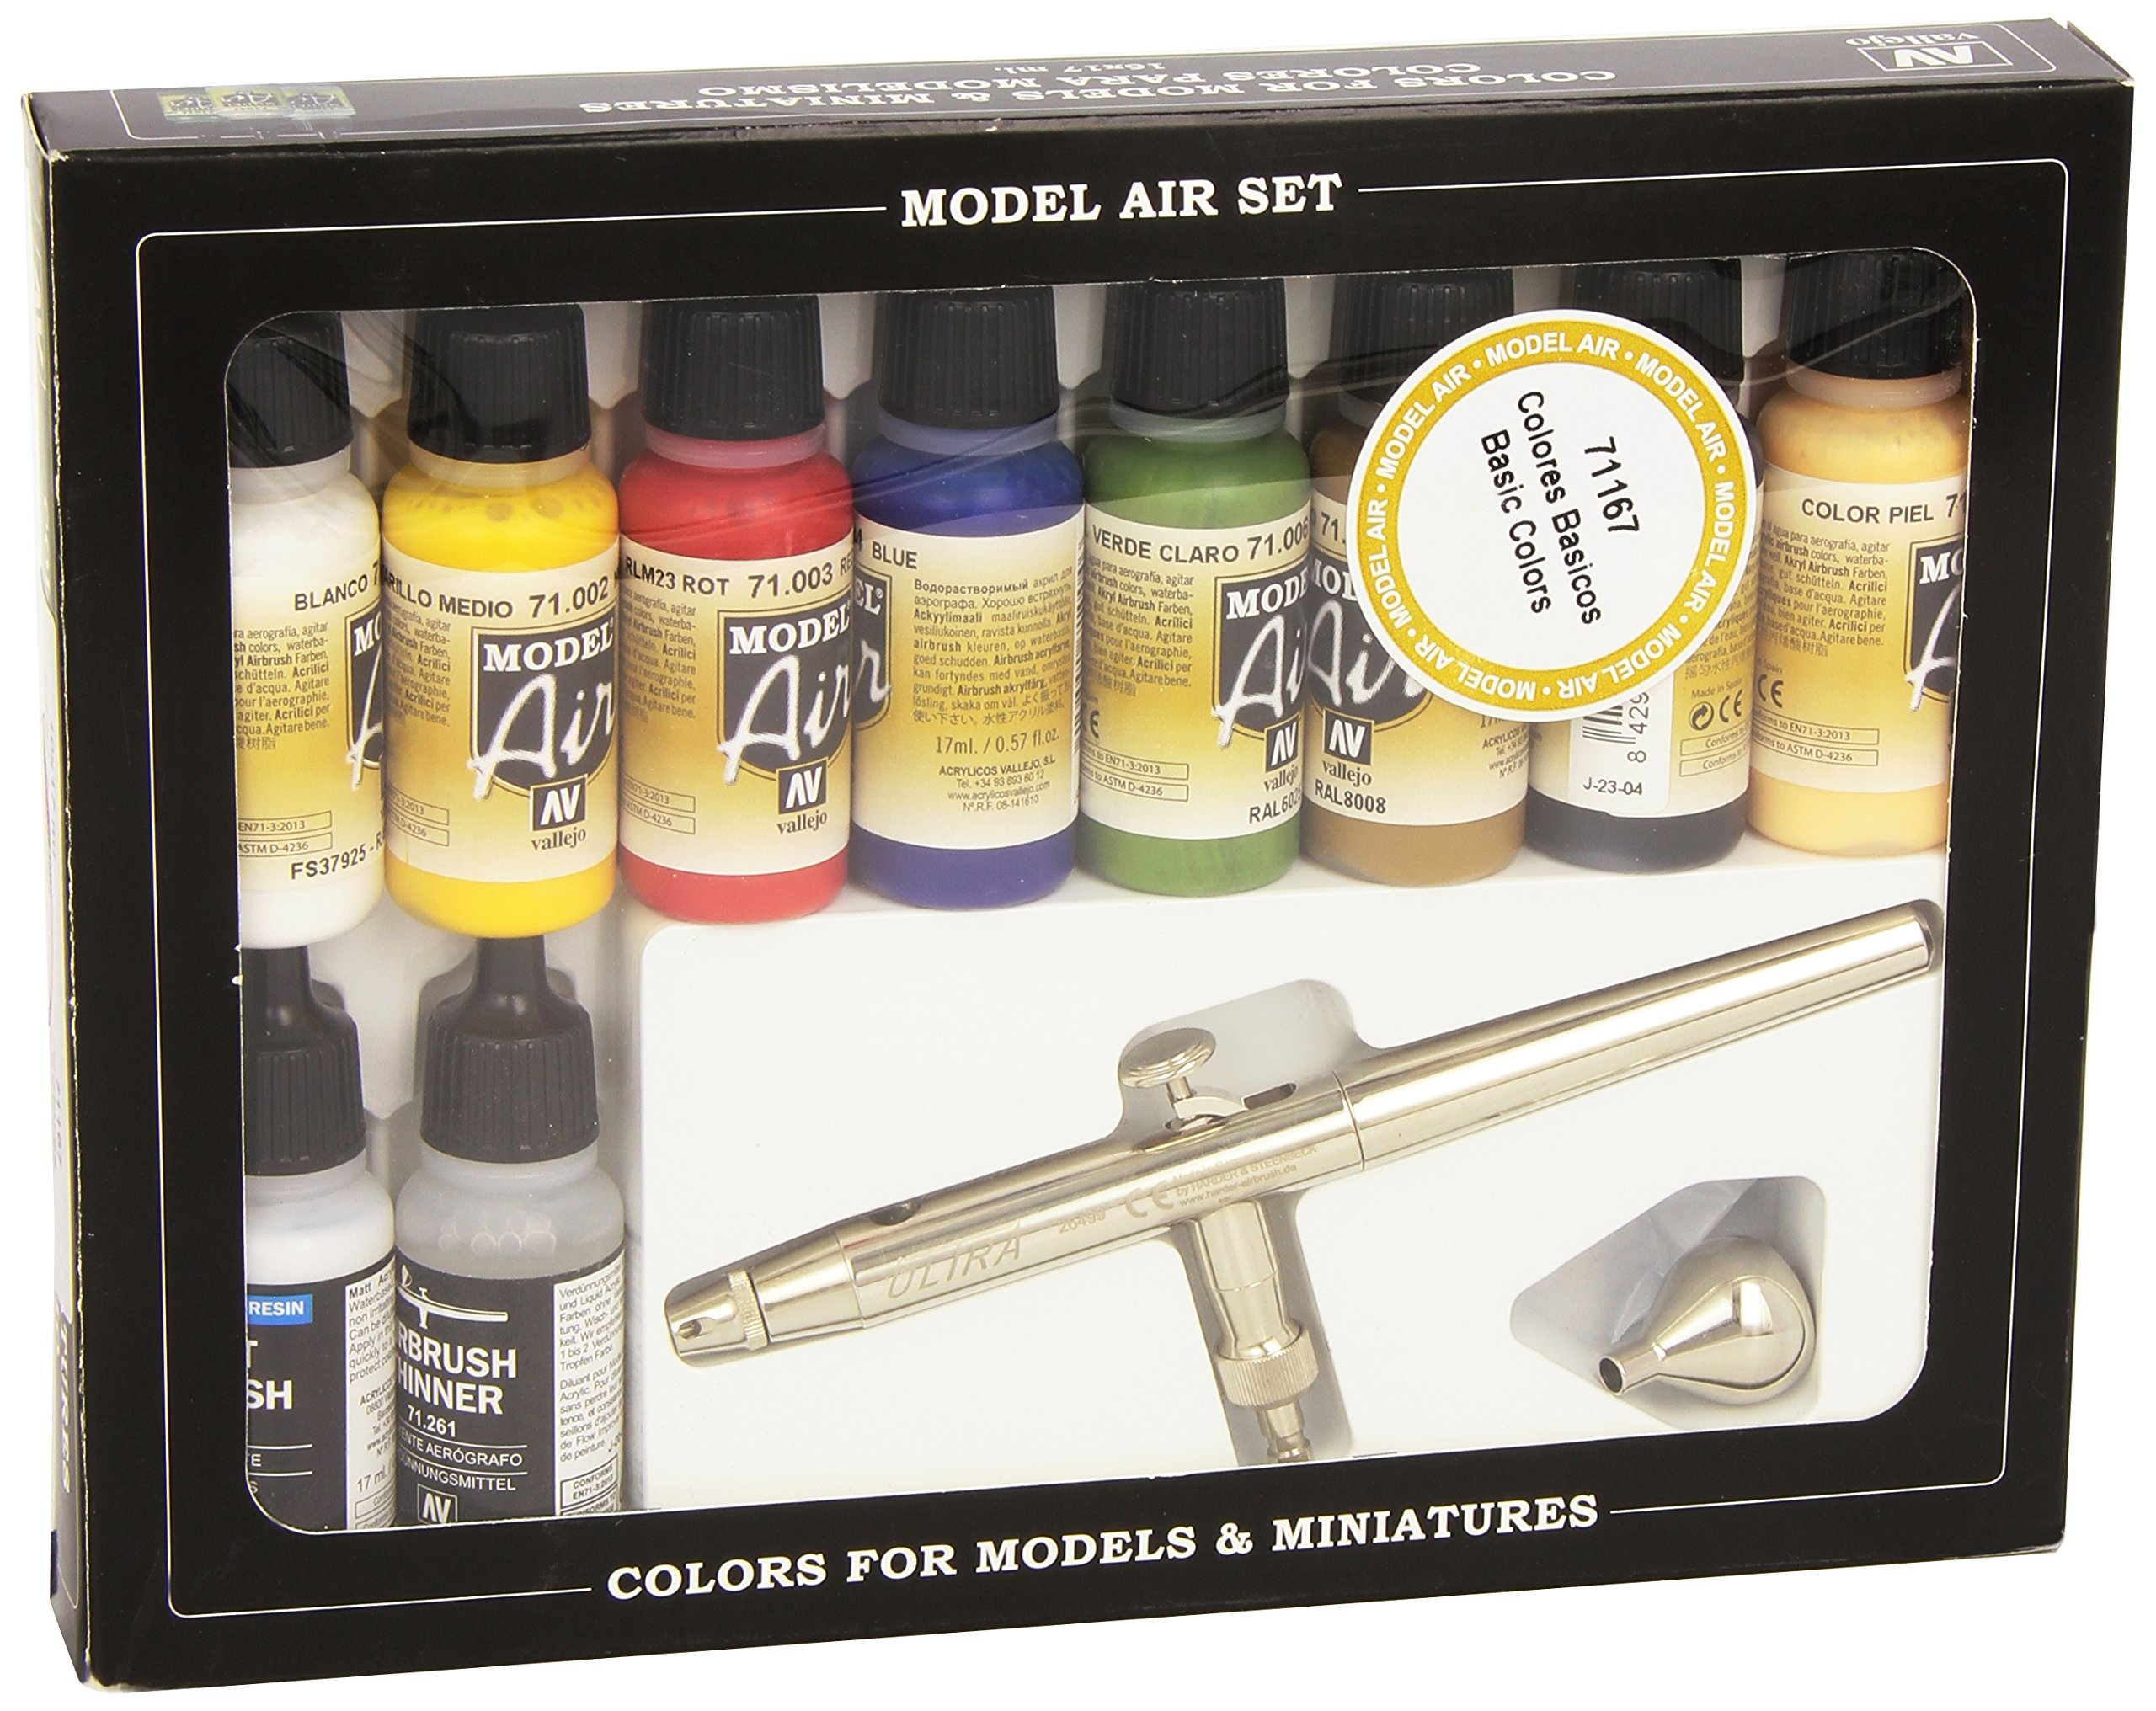 Av Vallejo Model Air Set -ultra Airbrush + 10 Basic Cols